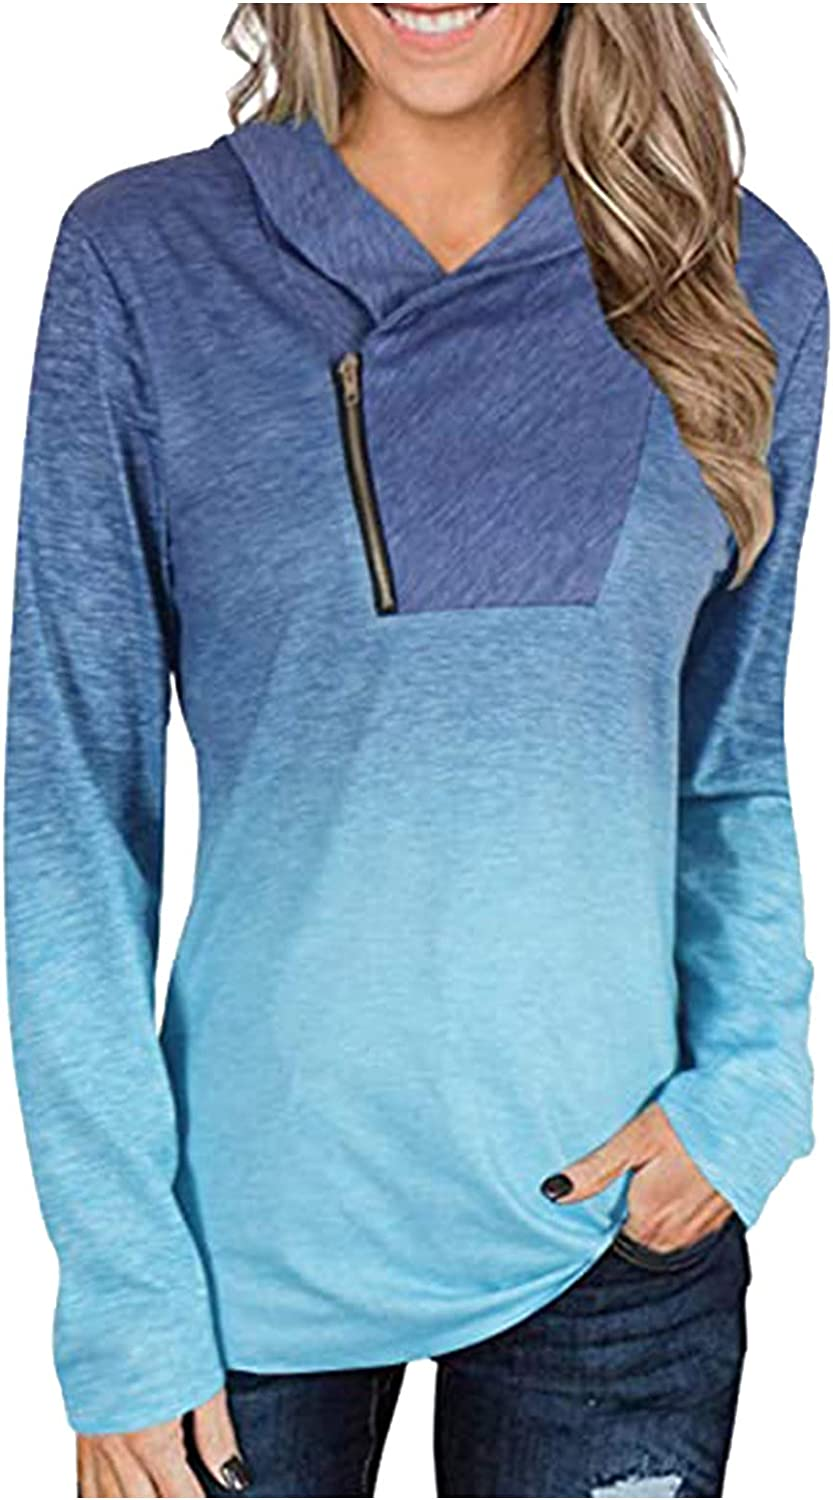 BEUU Women's Lightweight Sweatshirts Cowl Neck Workout Running Tunic Shirts with Pocket Casual High Neck Solid Hoodie